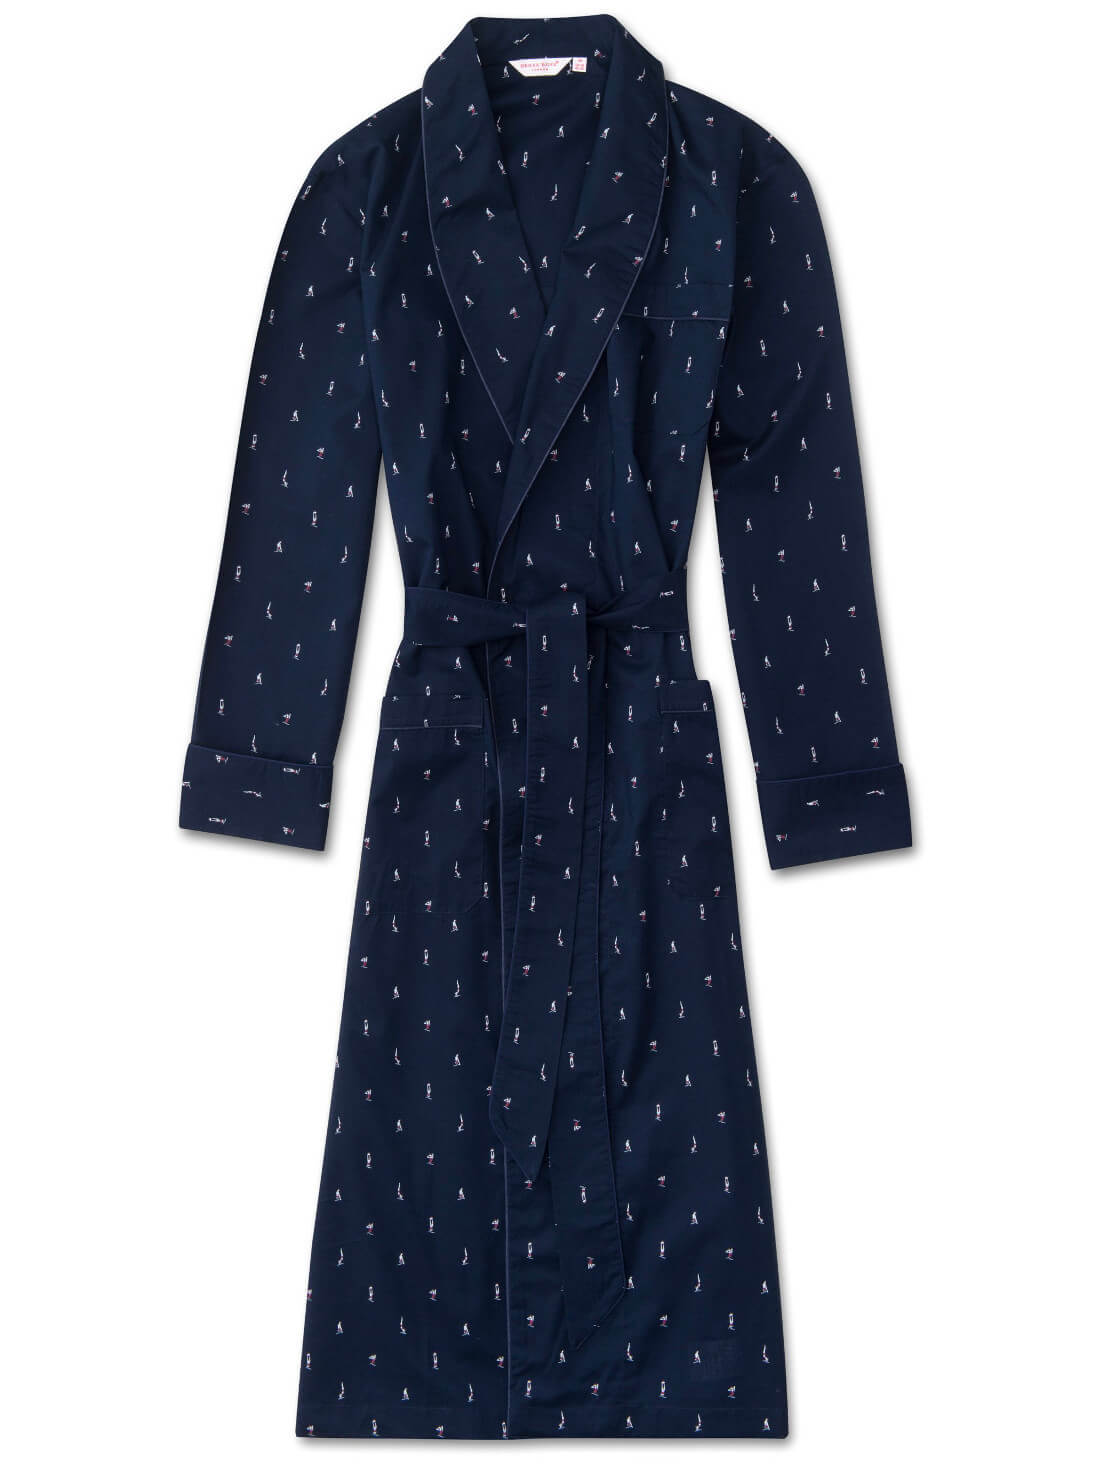 mens_piped_dressing_gown_nelson_59_cotton_batiste_navy_main